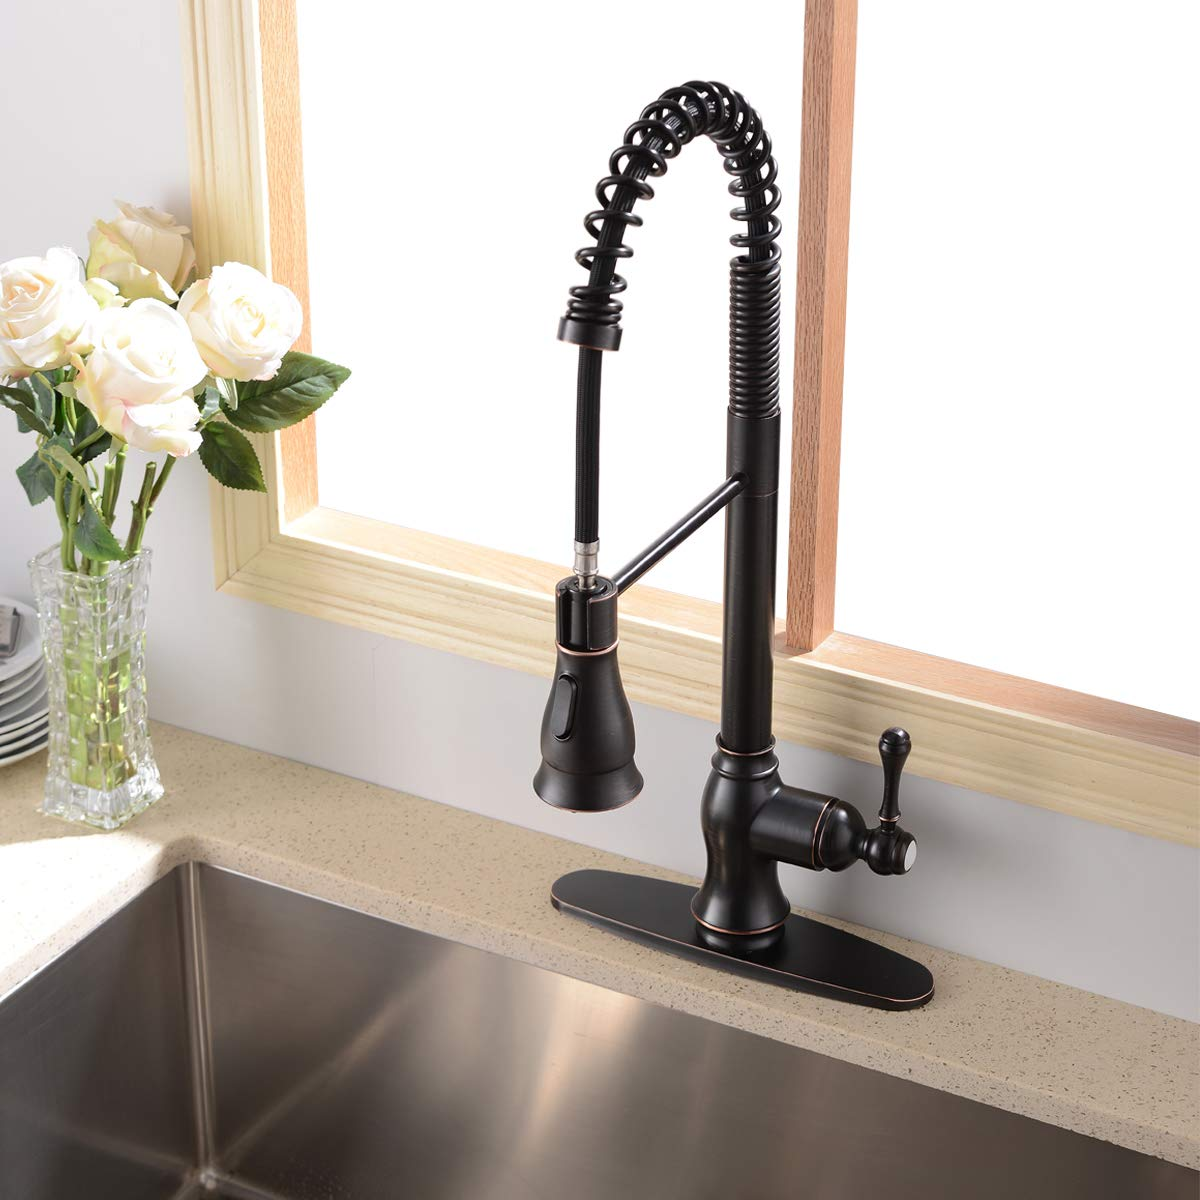 Antique Spring Single Handle Pull Down Sprayer Oil Rubbed Bronze Kitchen Faucet, Kitchen Faucet Bronze With Deck Plate by SHACO (Image #3)